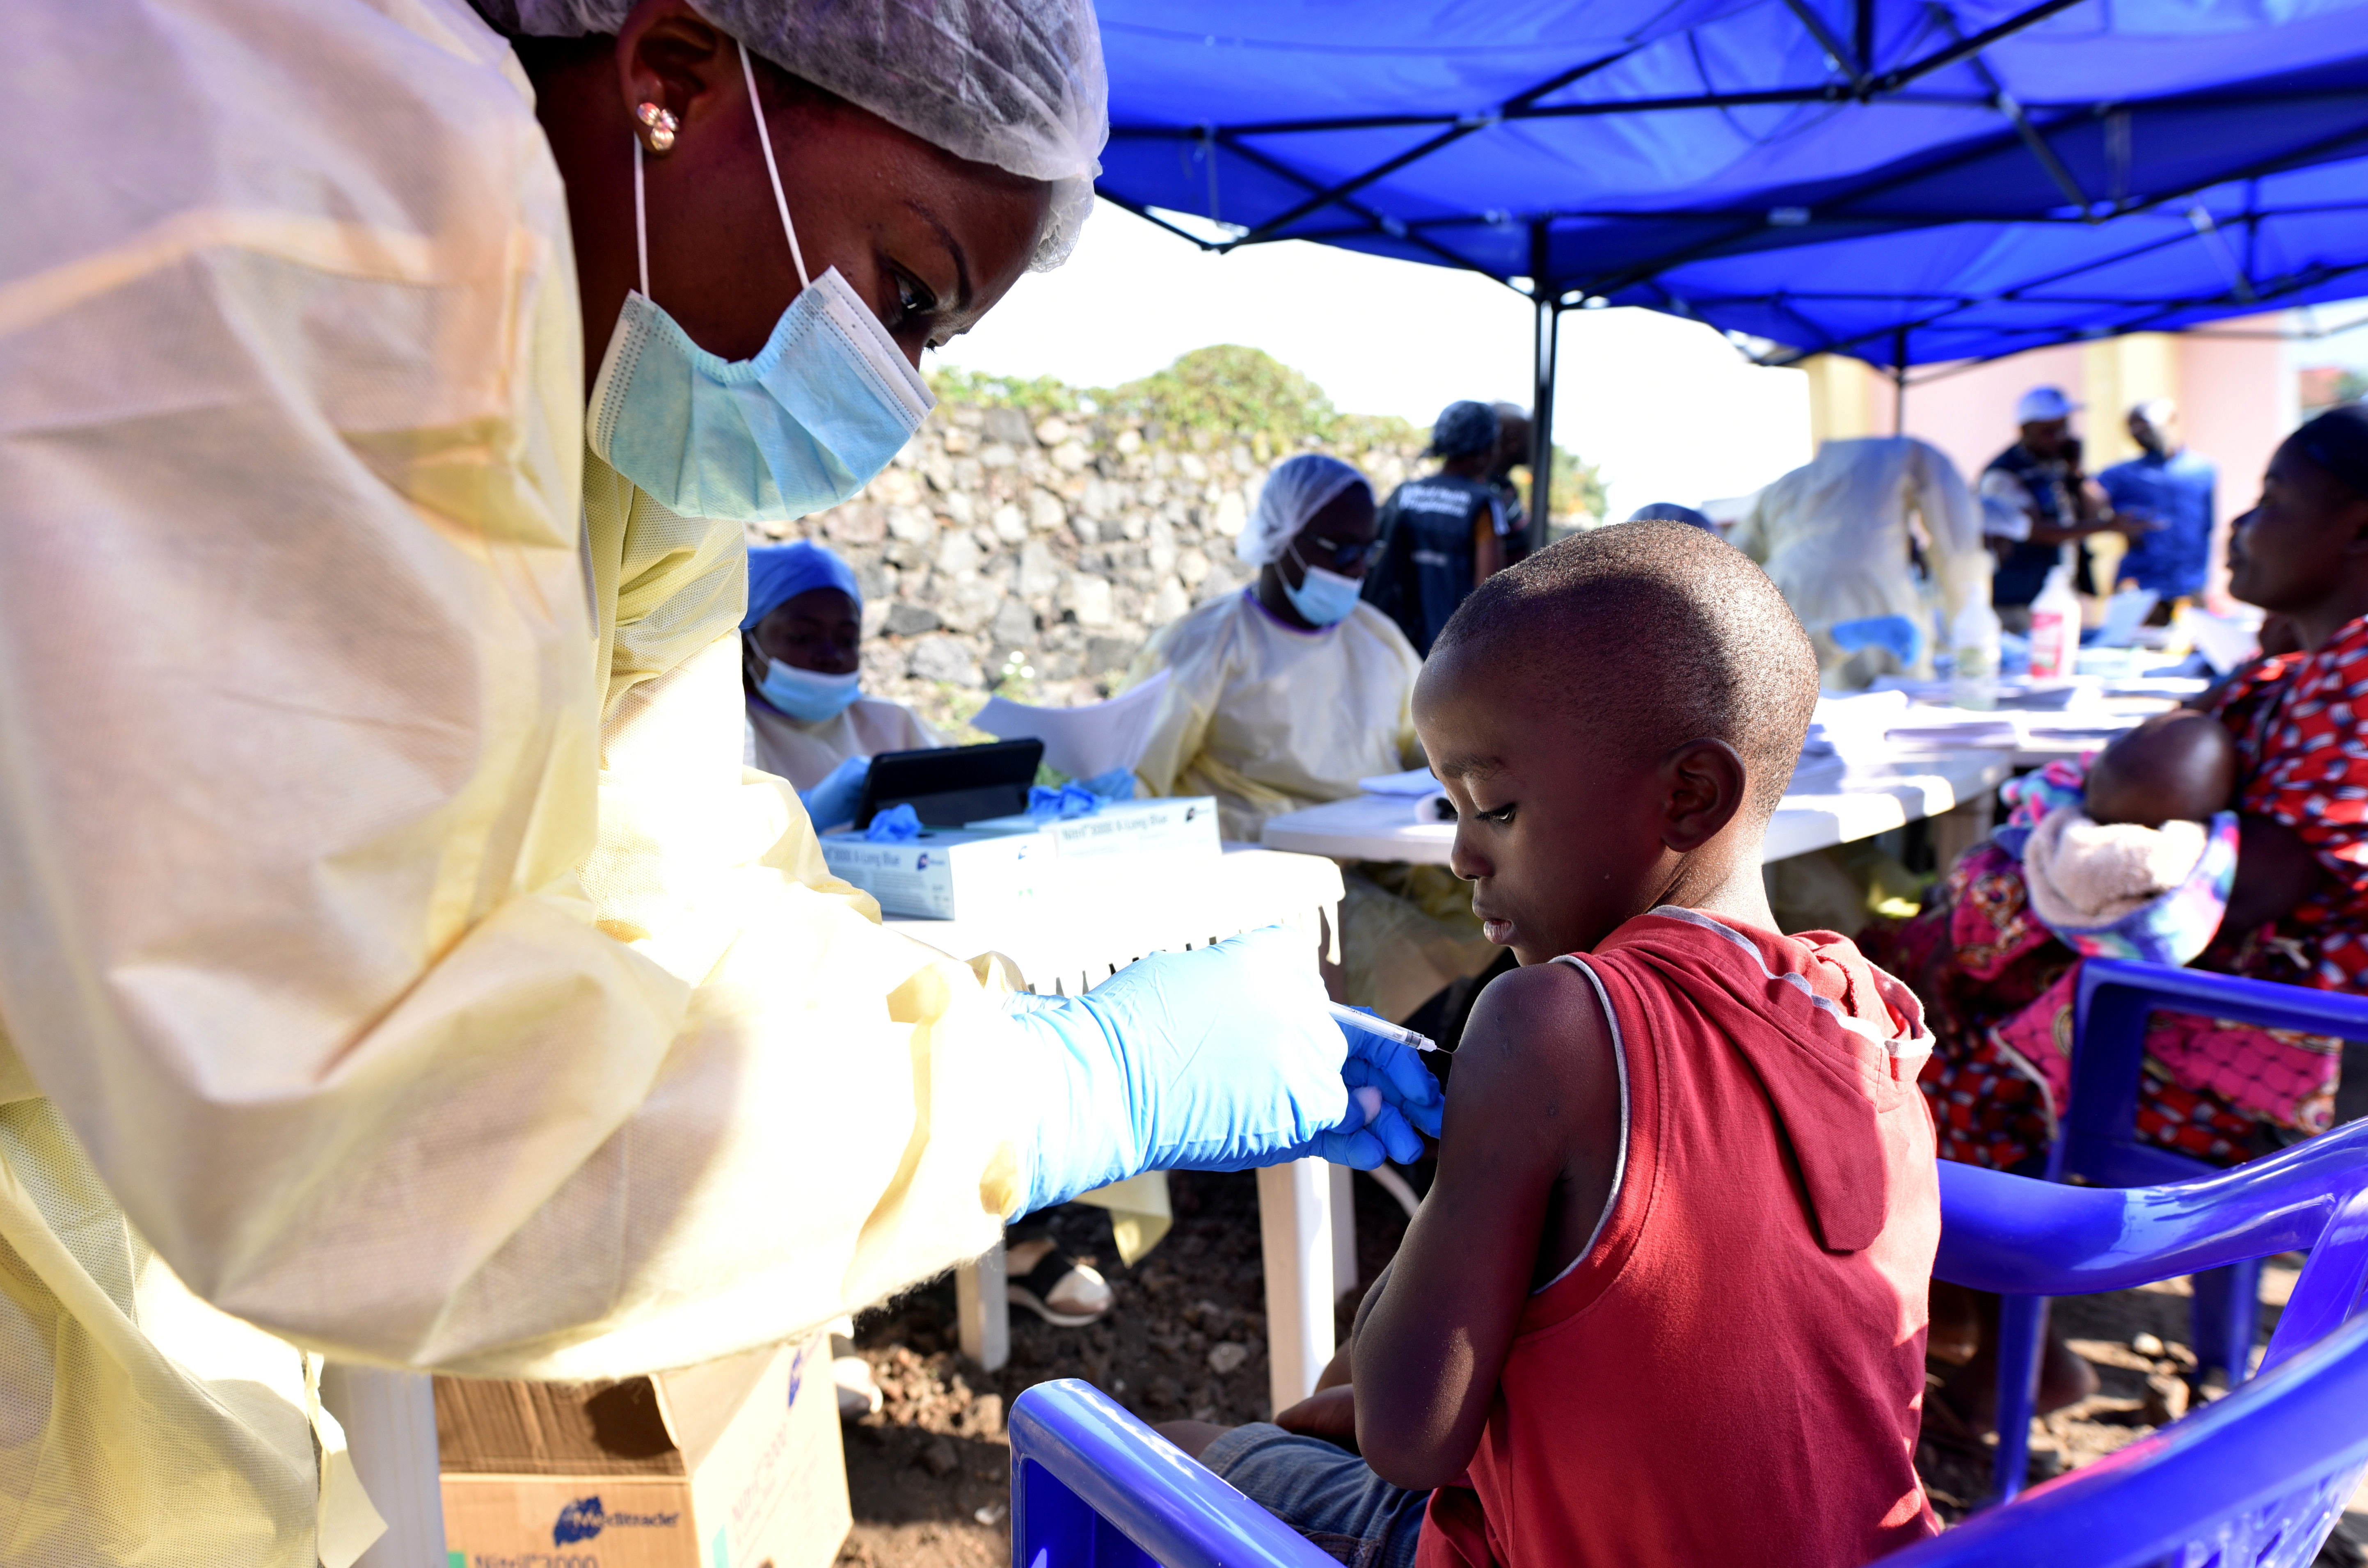 FILE PHOTO: A Congolese health worker administers ebola vaccine to a child at the Himbi Health Centre in Goma, Democratic Republic of Congo, July 17, 2019. REUTERS/Olivia Acland/File Photo